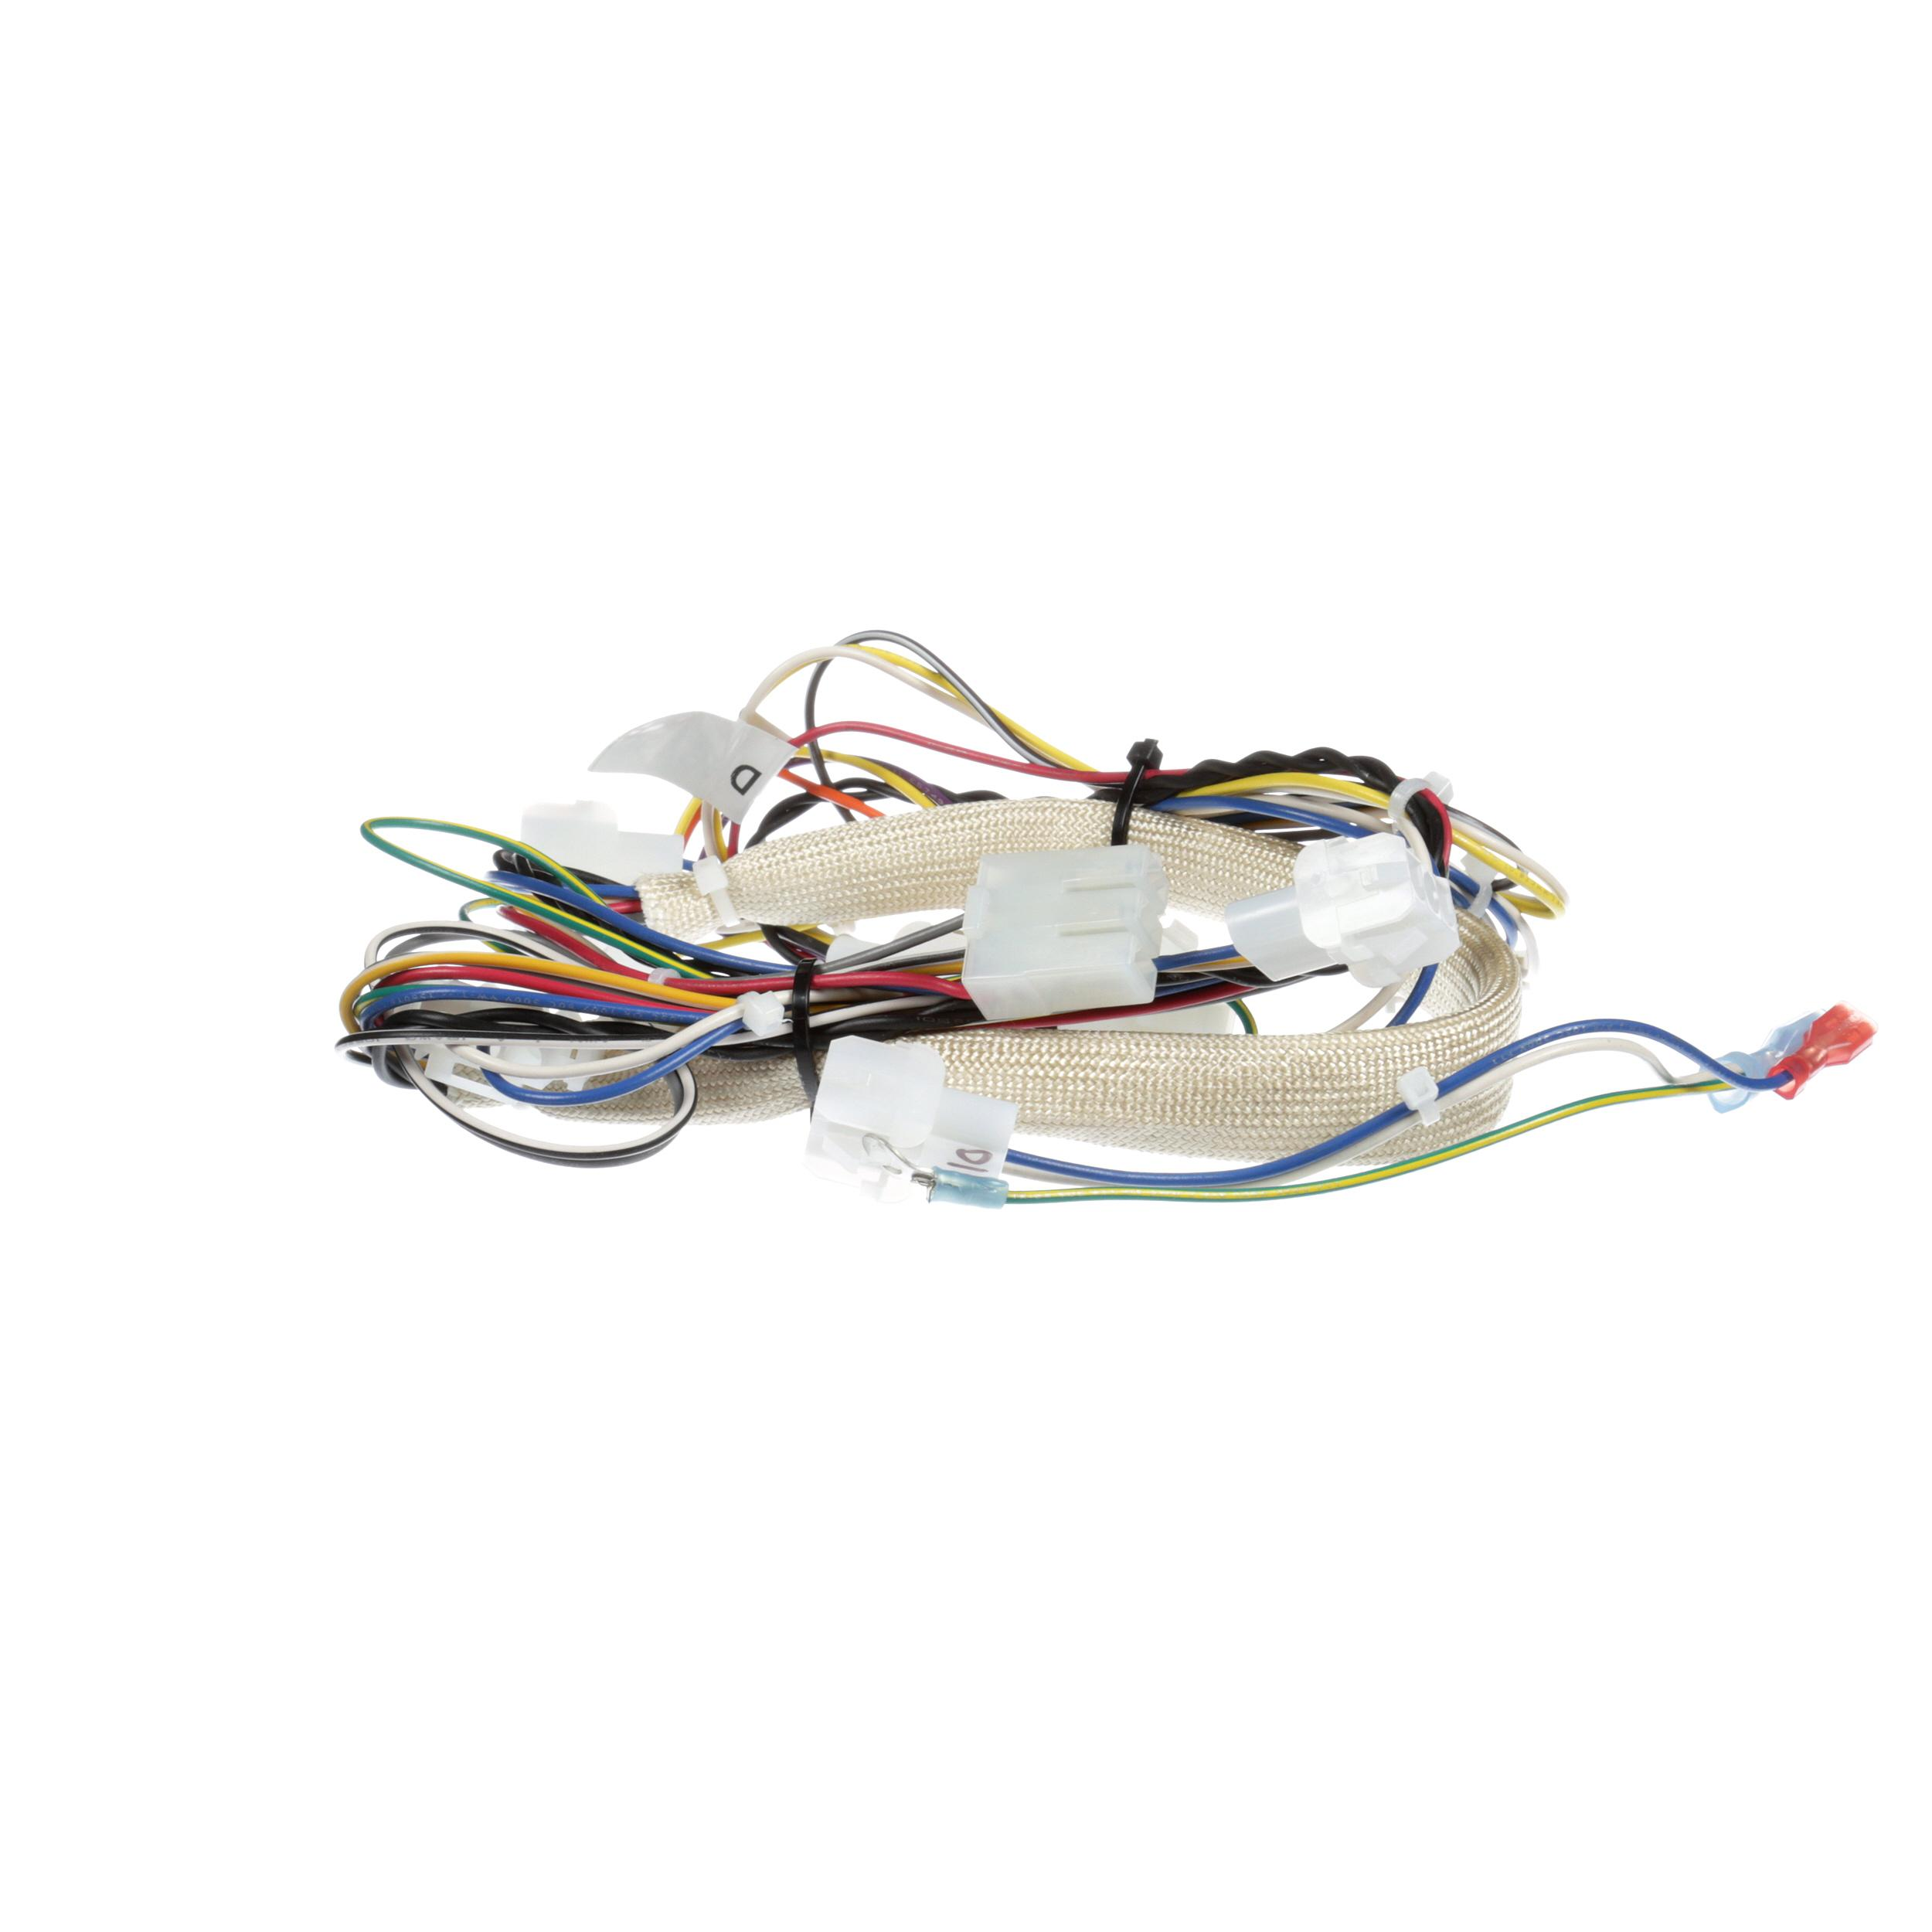 Pitco Wiring Harness Part B6796301 Optimization